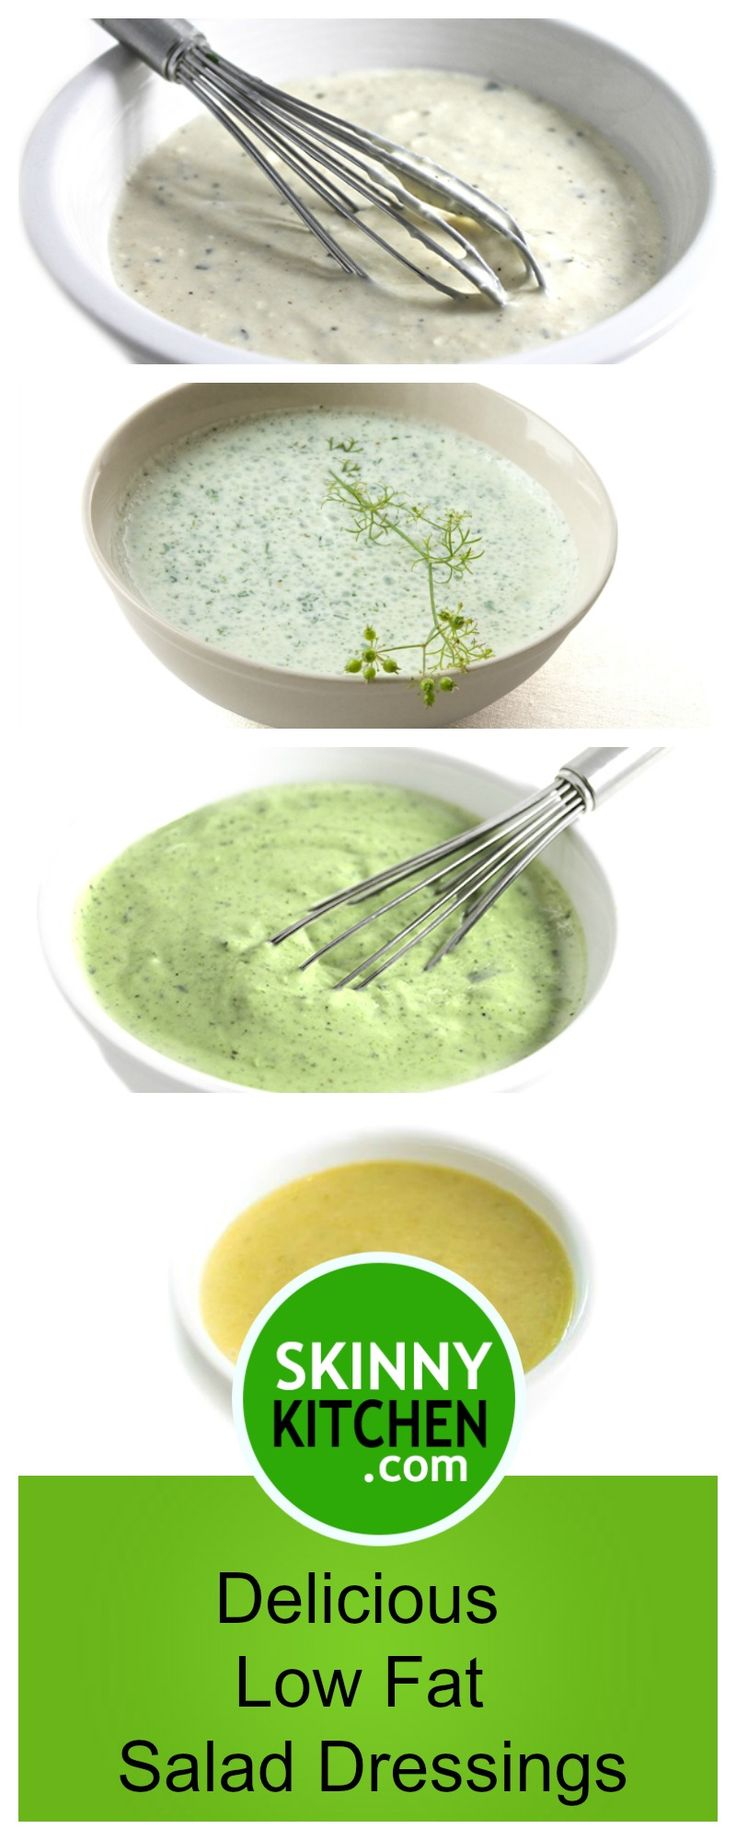 5 More Incredibly Delicious Low Fat Salad Dressings. All start with my skinny ranch dressing as the base. They include, Parmesan Ranch, Cilantro, Curry, and Green Goddess. All dressing are under 24 cal/TBSP and under 2g fat. All include SmartPoints #saladdressings #glutenfree https://www.skinnykitchen.com/recipes/5-more-delicious-low-fat-salad-dressings/